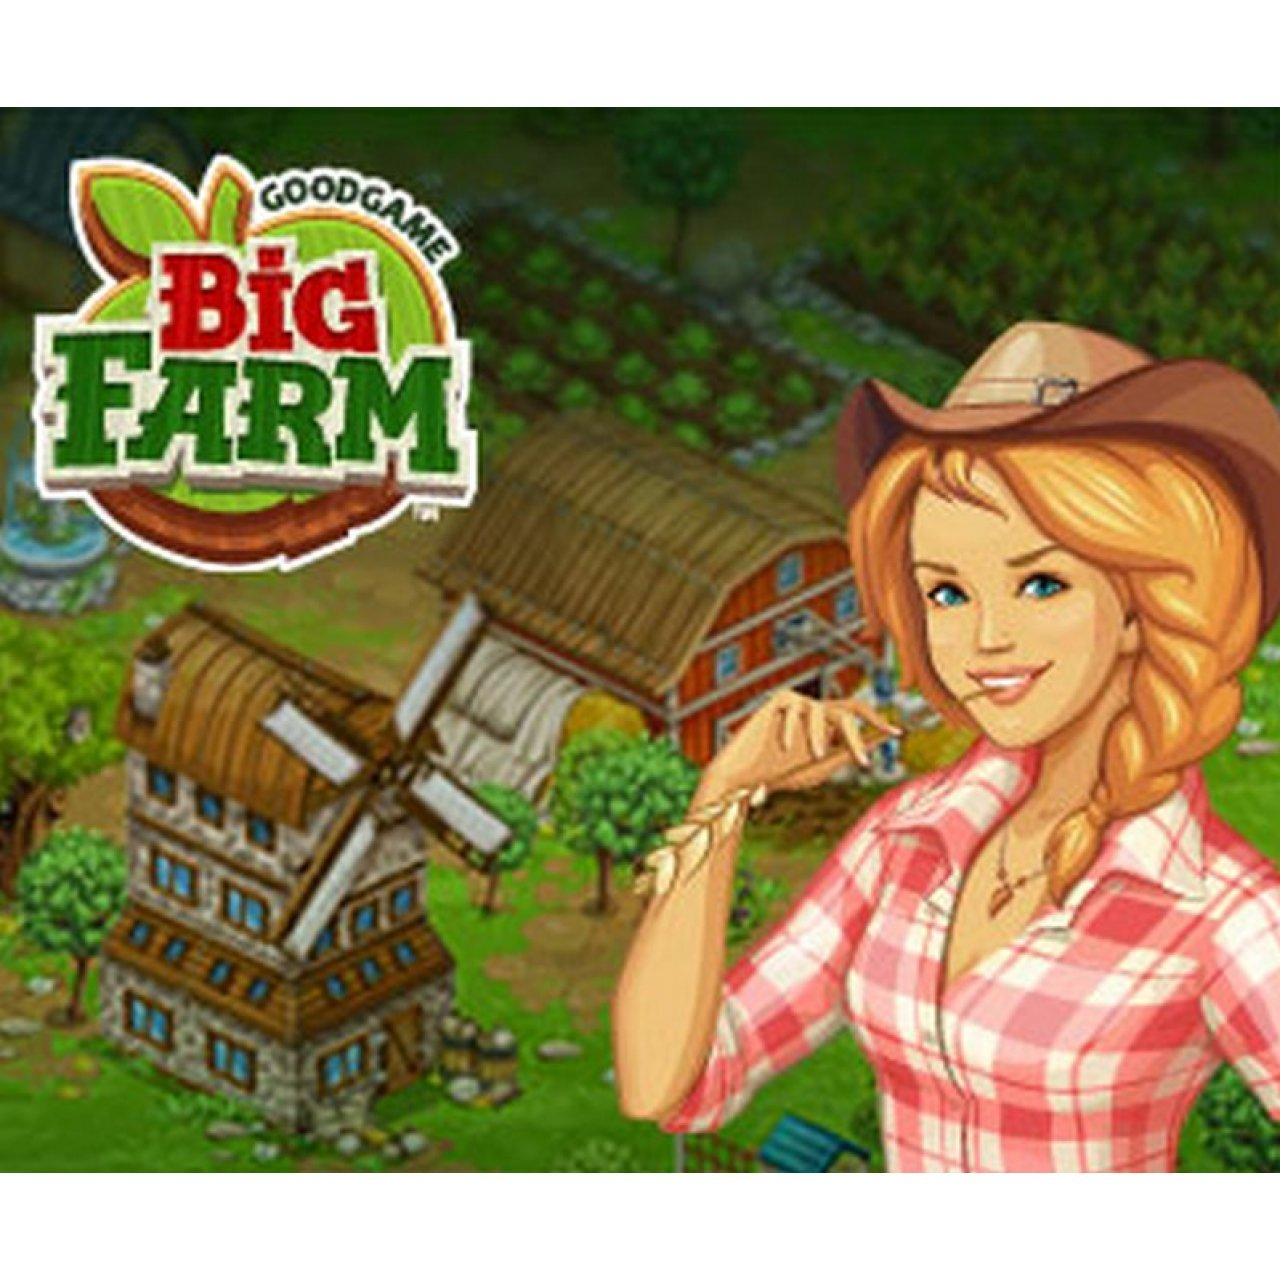 goodgame big farm login